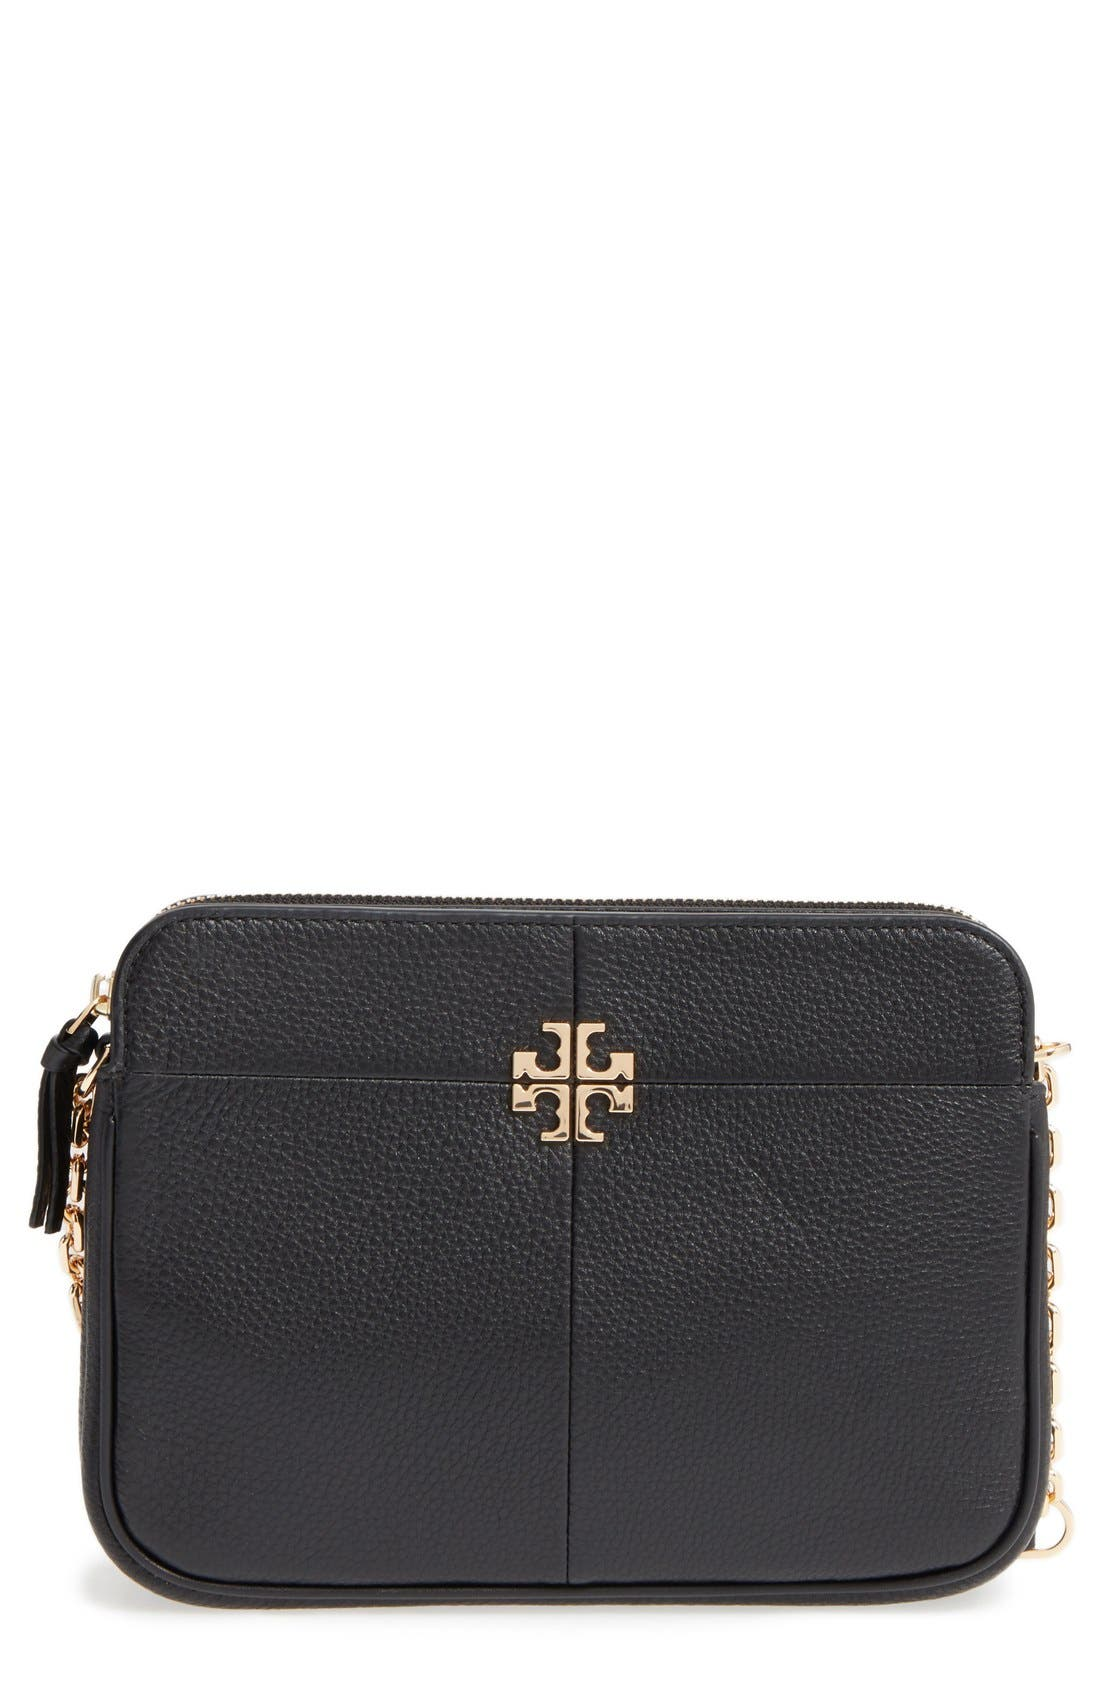 Alternate Image 1 Selected - Tory Burch Ivy Leather Crossbody Bag